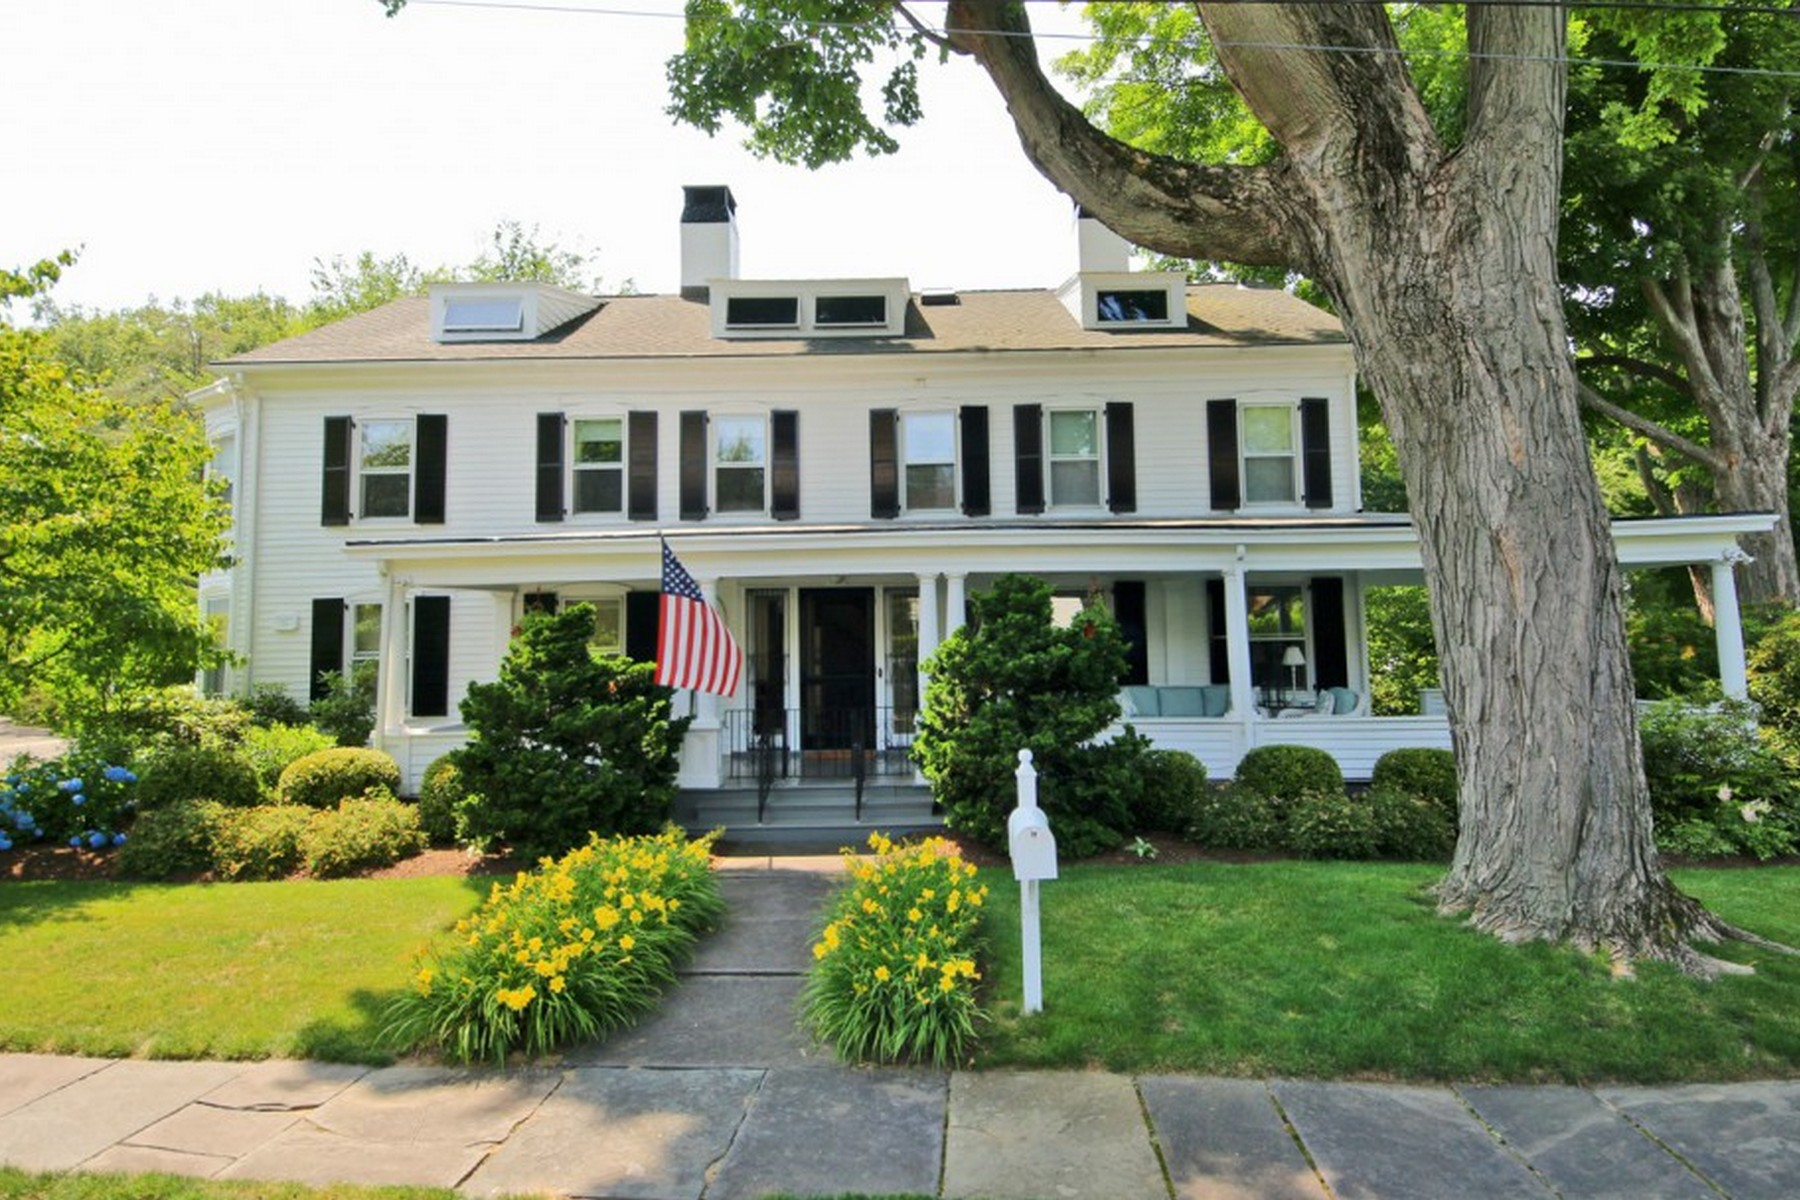 Maison unifamiliale pour l Vente à PAUL SHEFFIELD HOUSE - SOUTHPORT VILLAGE 72 Willow Fairfield, Connecticut 06890 États-Unis